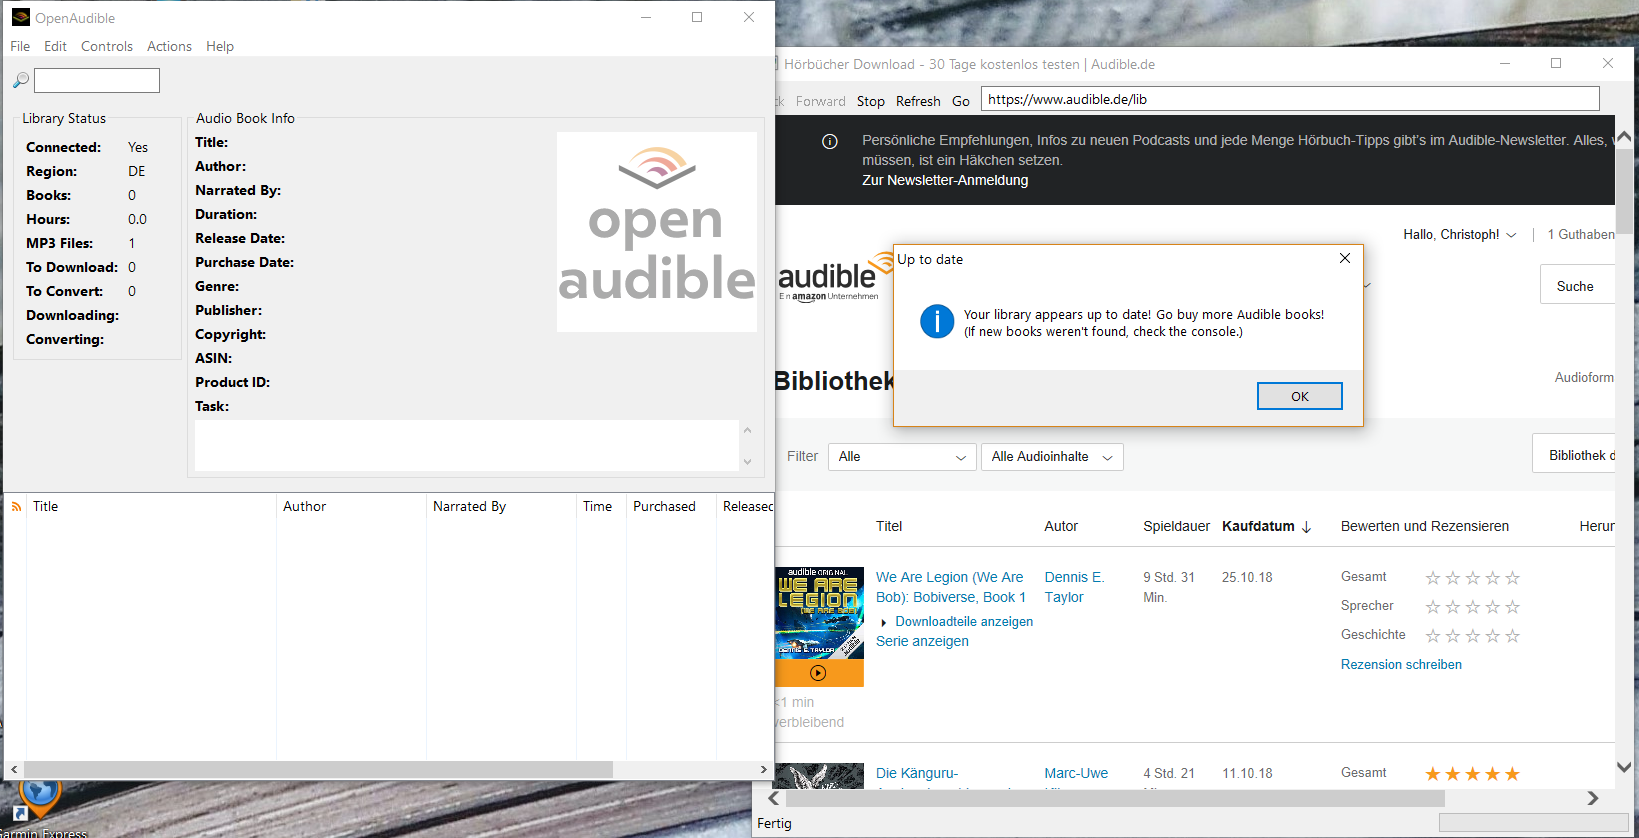 connecting to library don't work with audible de · Issue #55